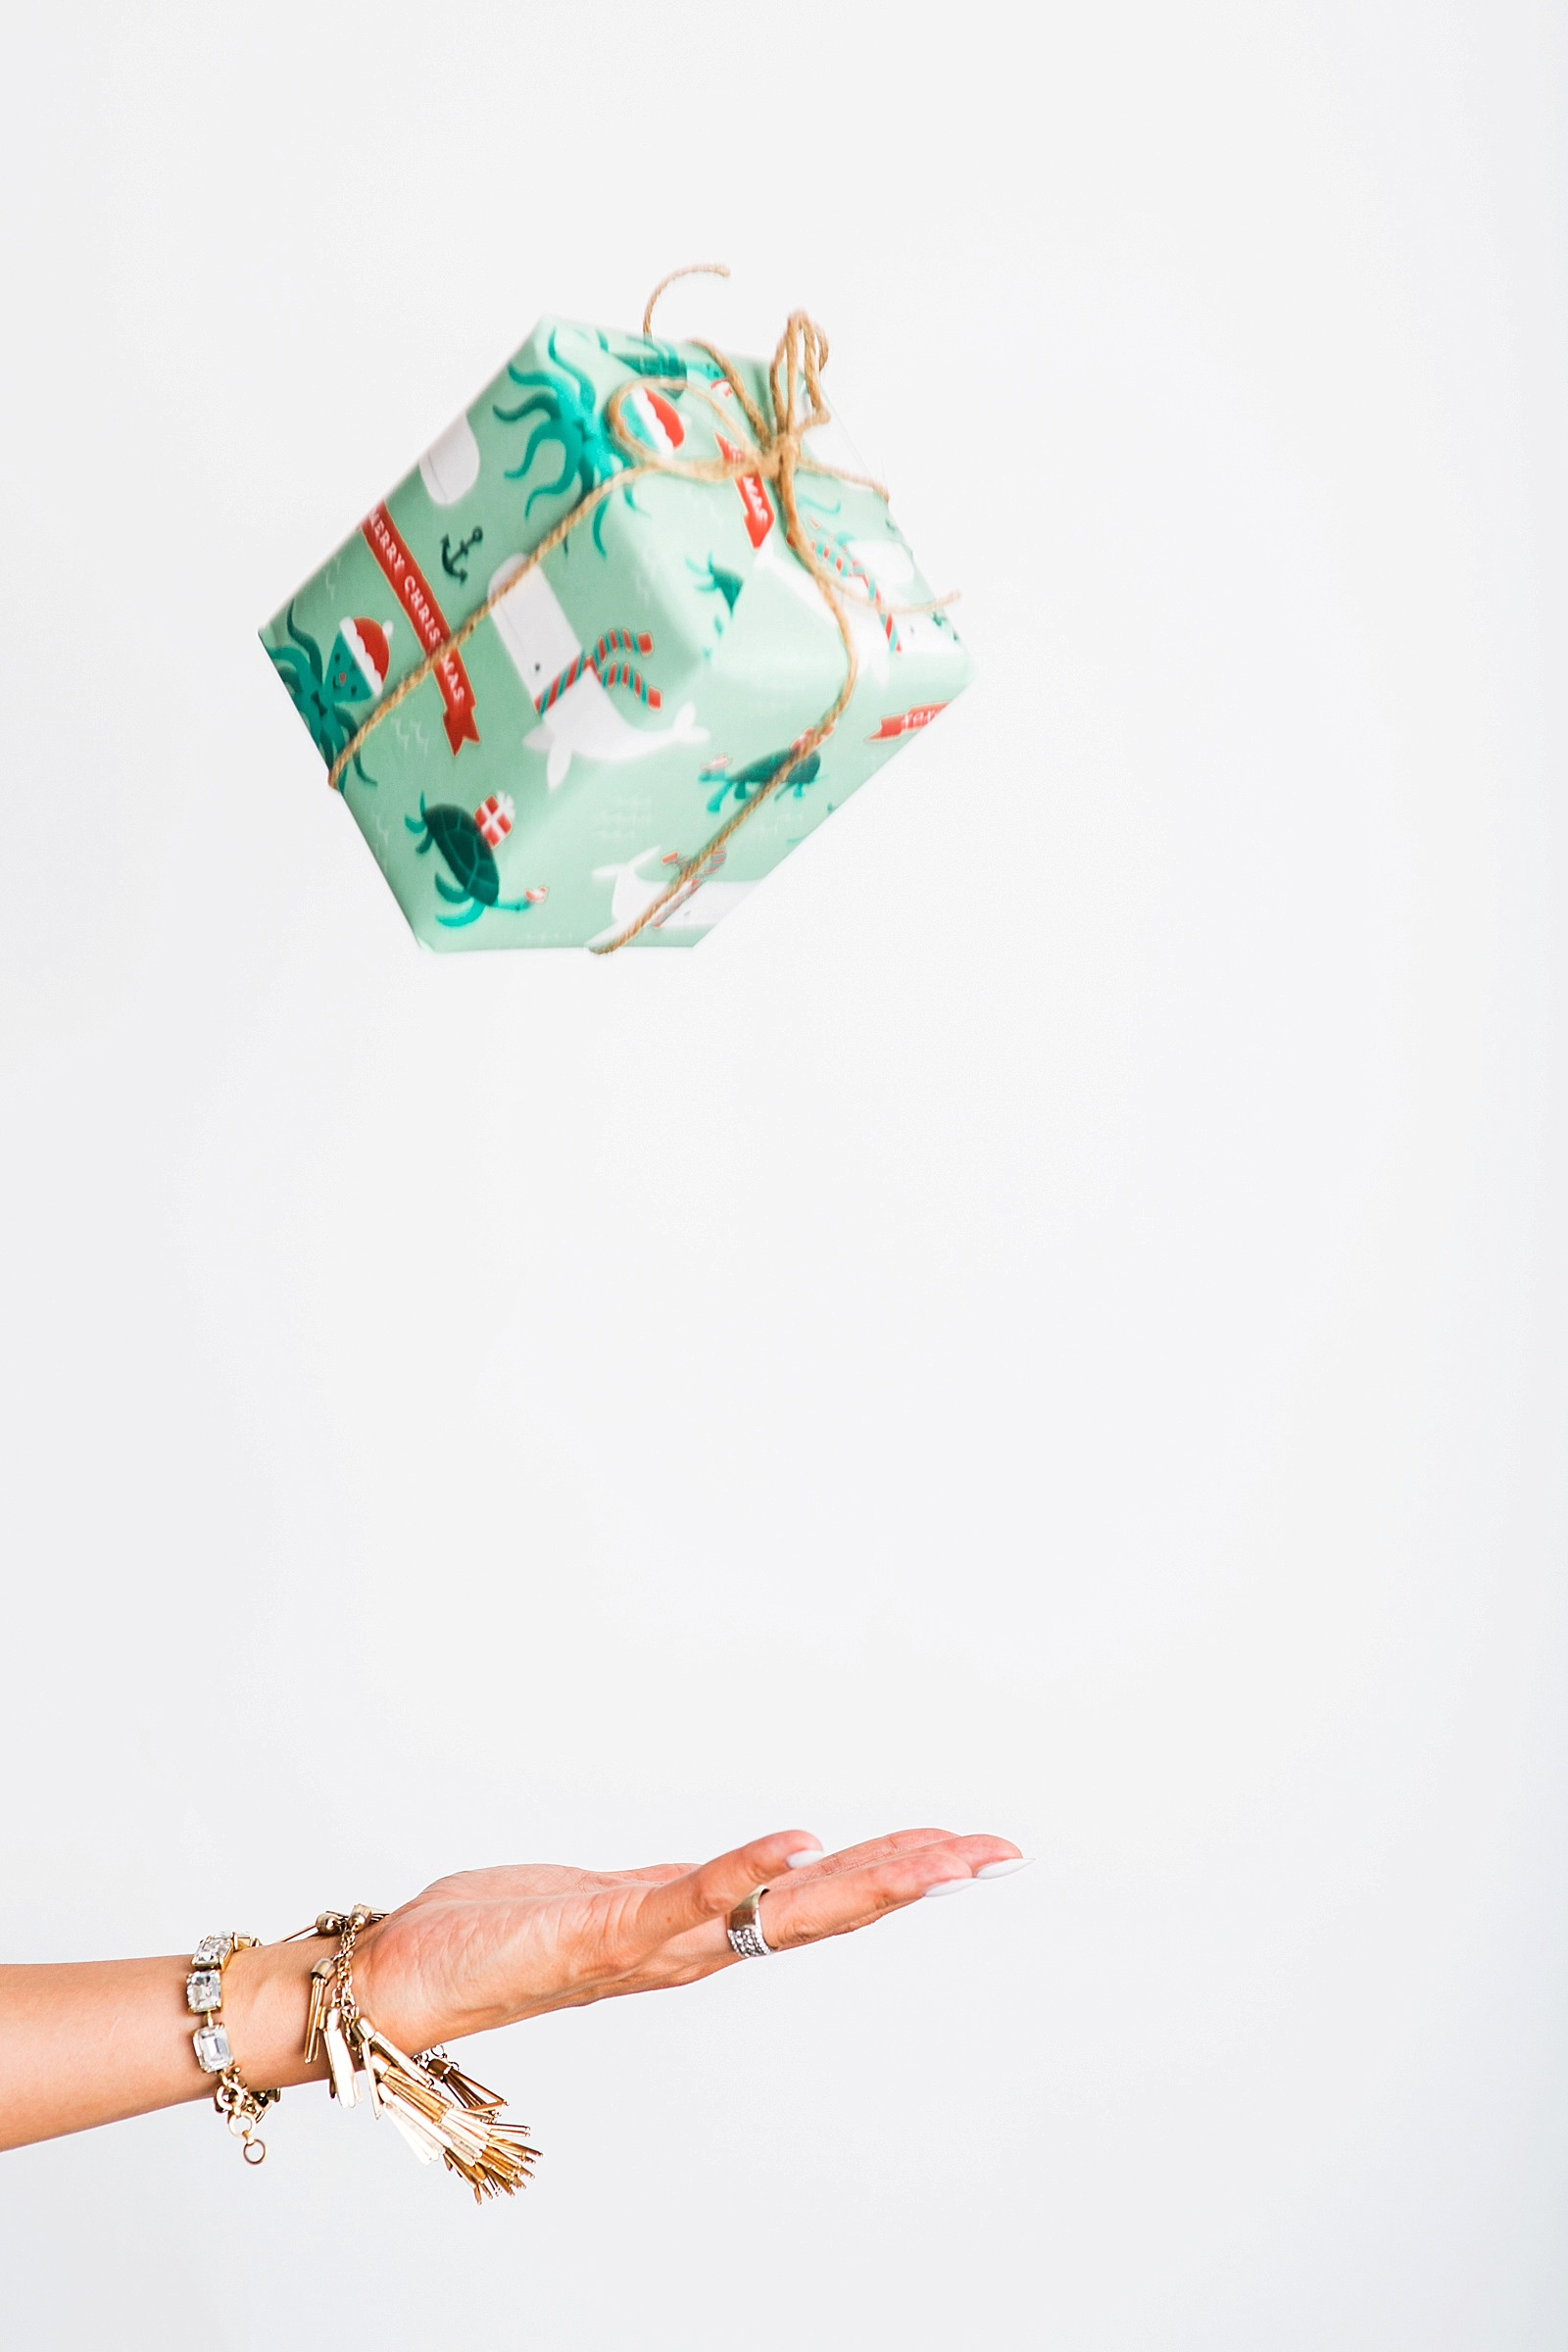 diana-elizabeth-blog-minted-custom-christmas-holiday-wrapping-paper-wurth-organizing-early-christmas-holiday-shopping-tips-2-7